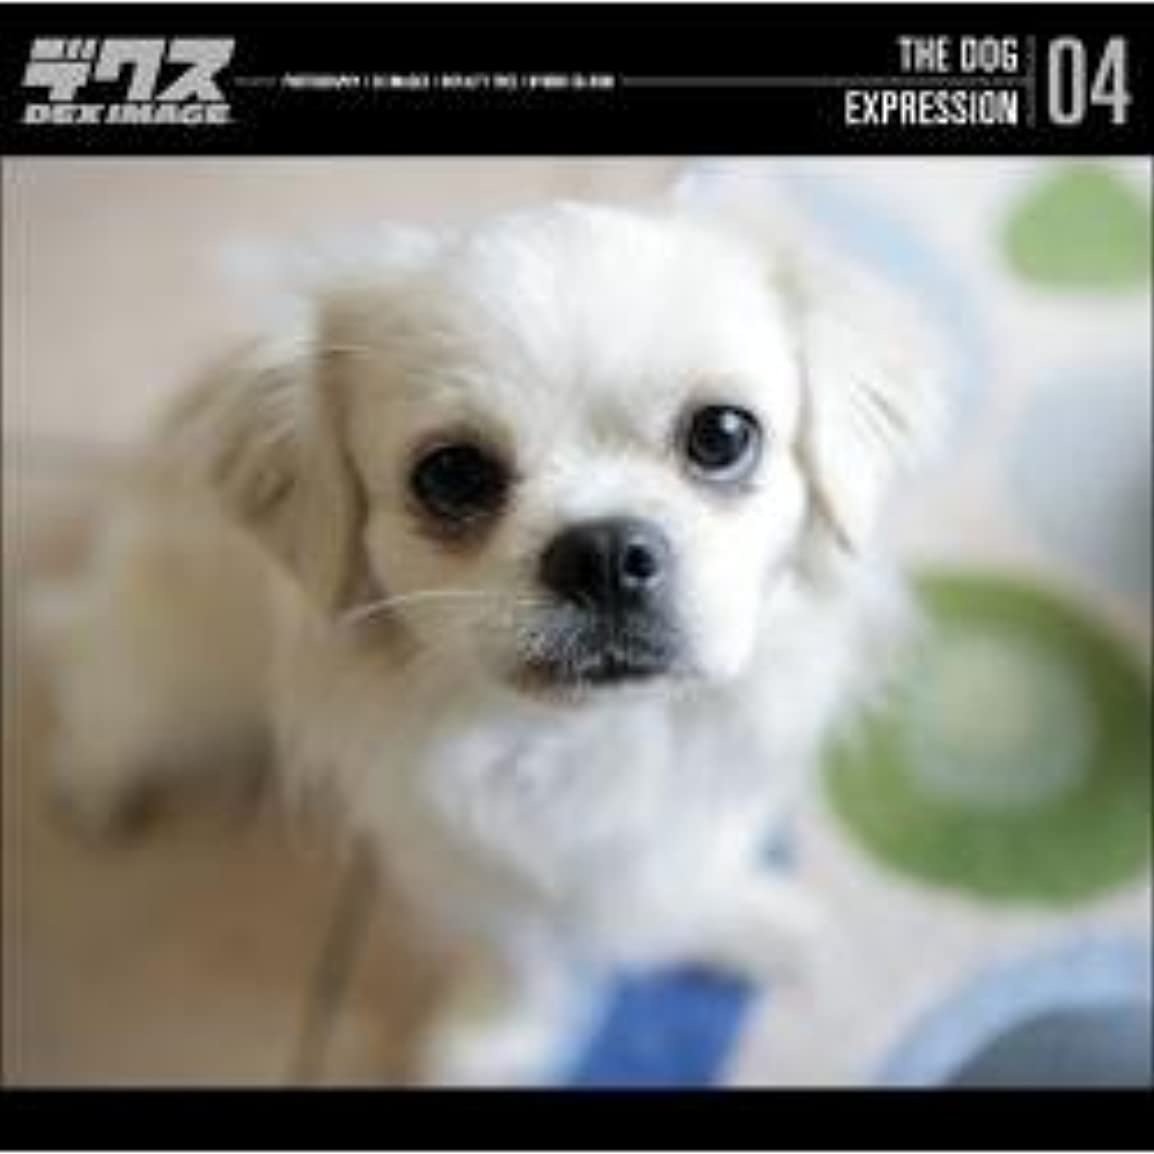 THE DOG 04 EXPRESSION